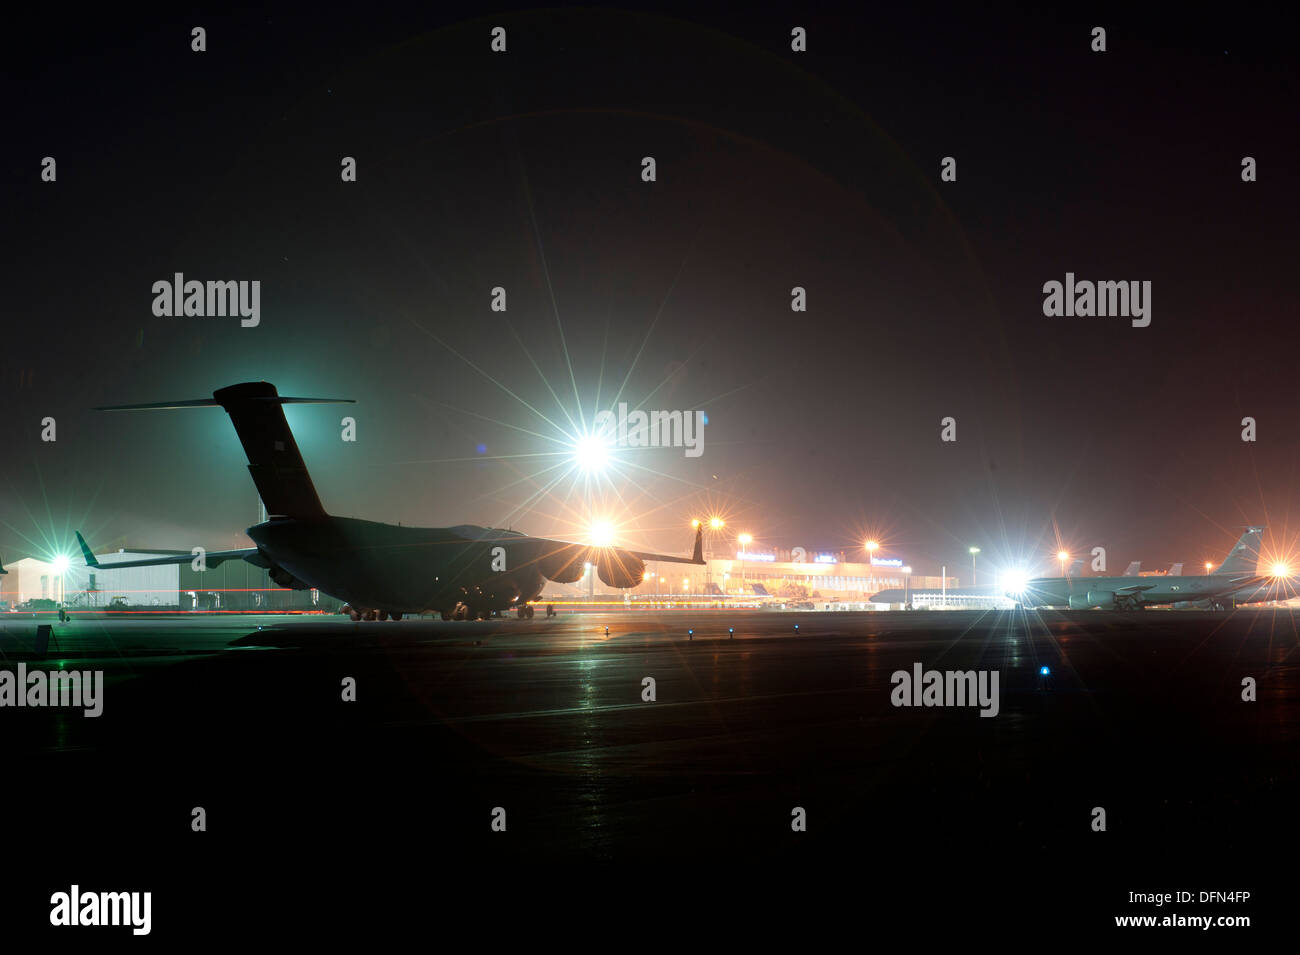 Bright lights illuminate the flightline and maintainence work stations for night operations at Transit Center at Manas, Kyrgyzstan, Oct. 2, 2013. The flight line is shared with the Kyrgyz Manas International Airport. - Stock Image